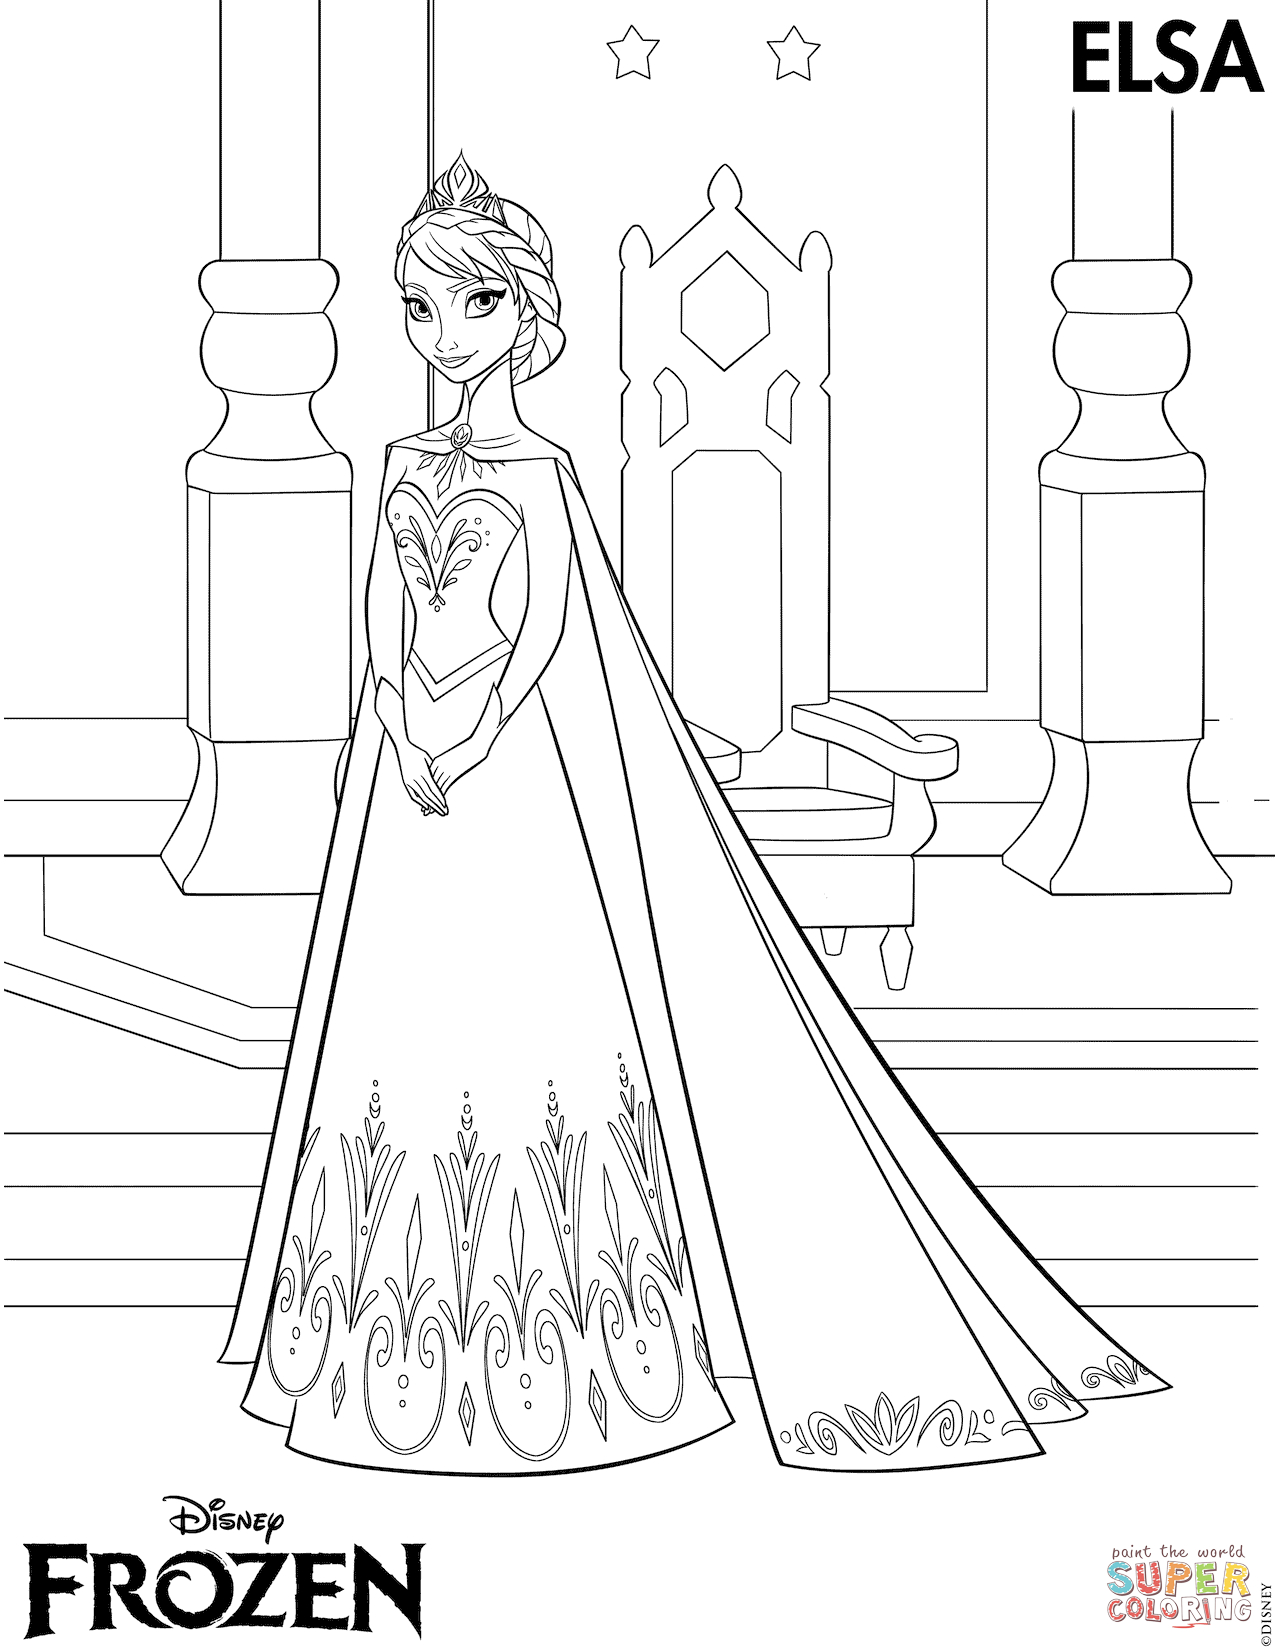 The Frozen Coloring Pages | Free Coloring Pages - Free Printable Frozen Coloring Pages